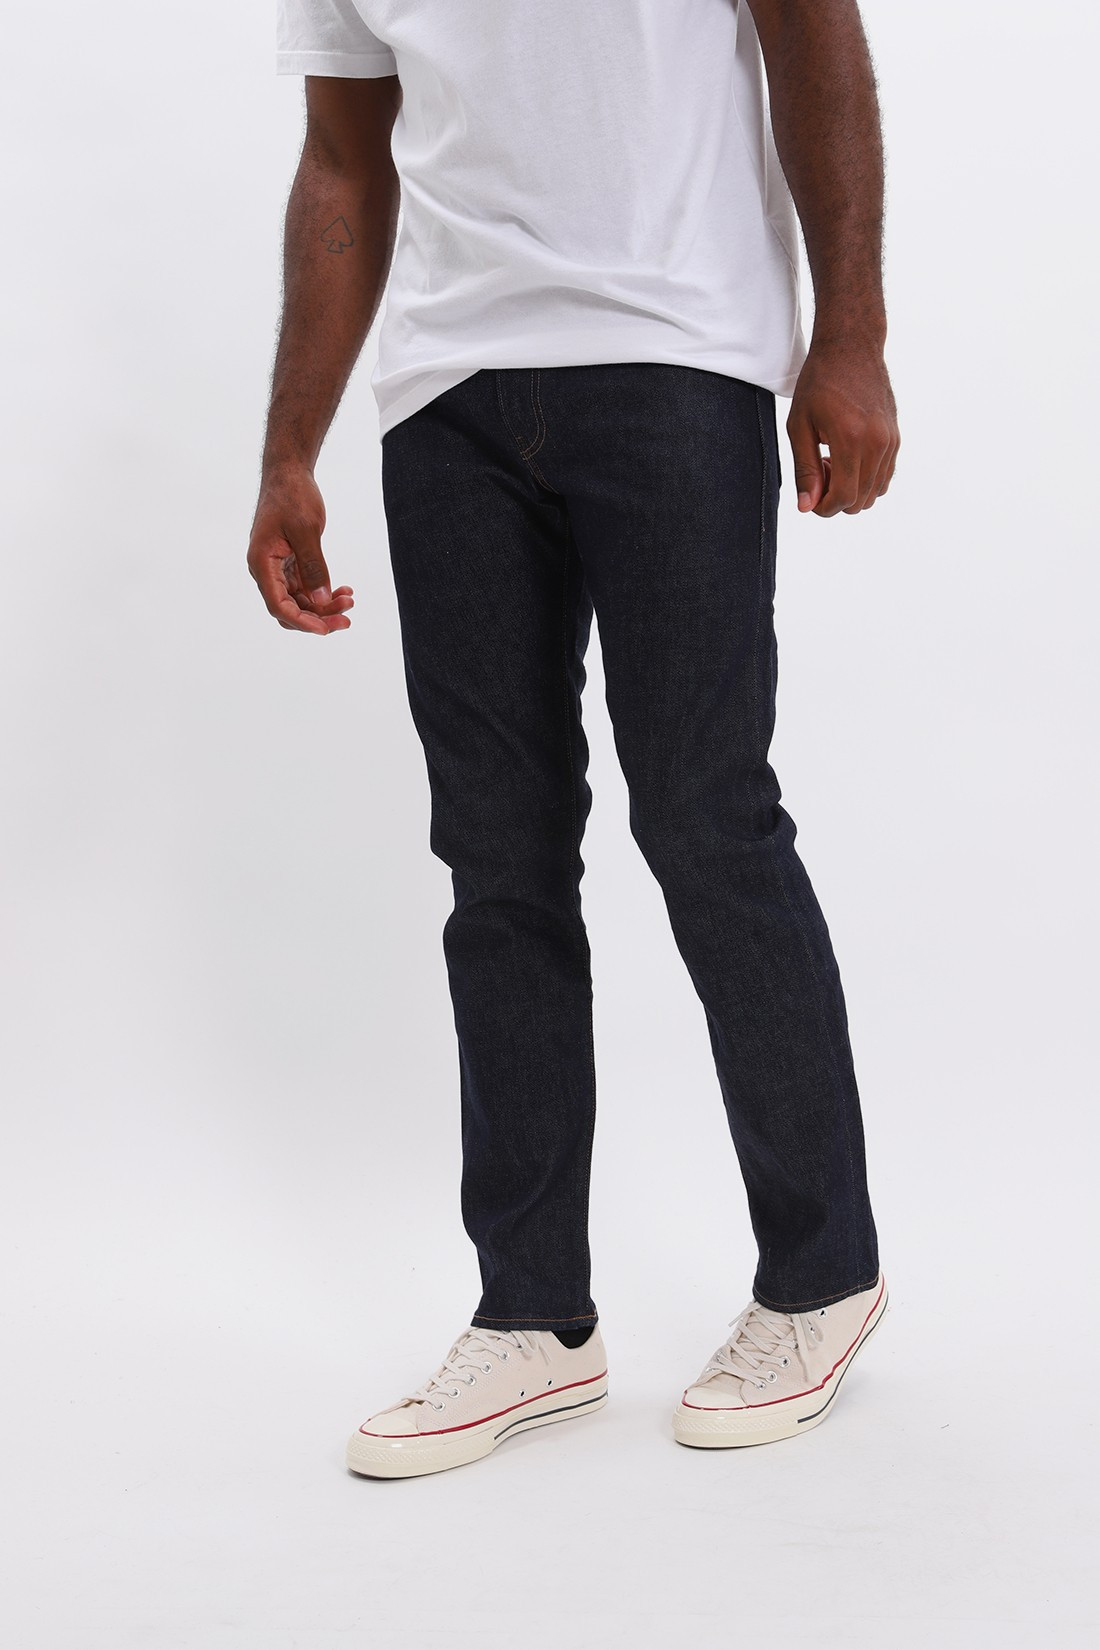 LEVI'S MADE & CRAFTED / Lmc 511 resin rinsed denim Resin rinsed